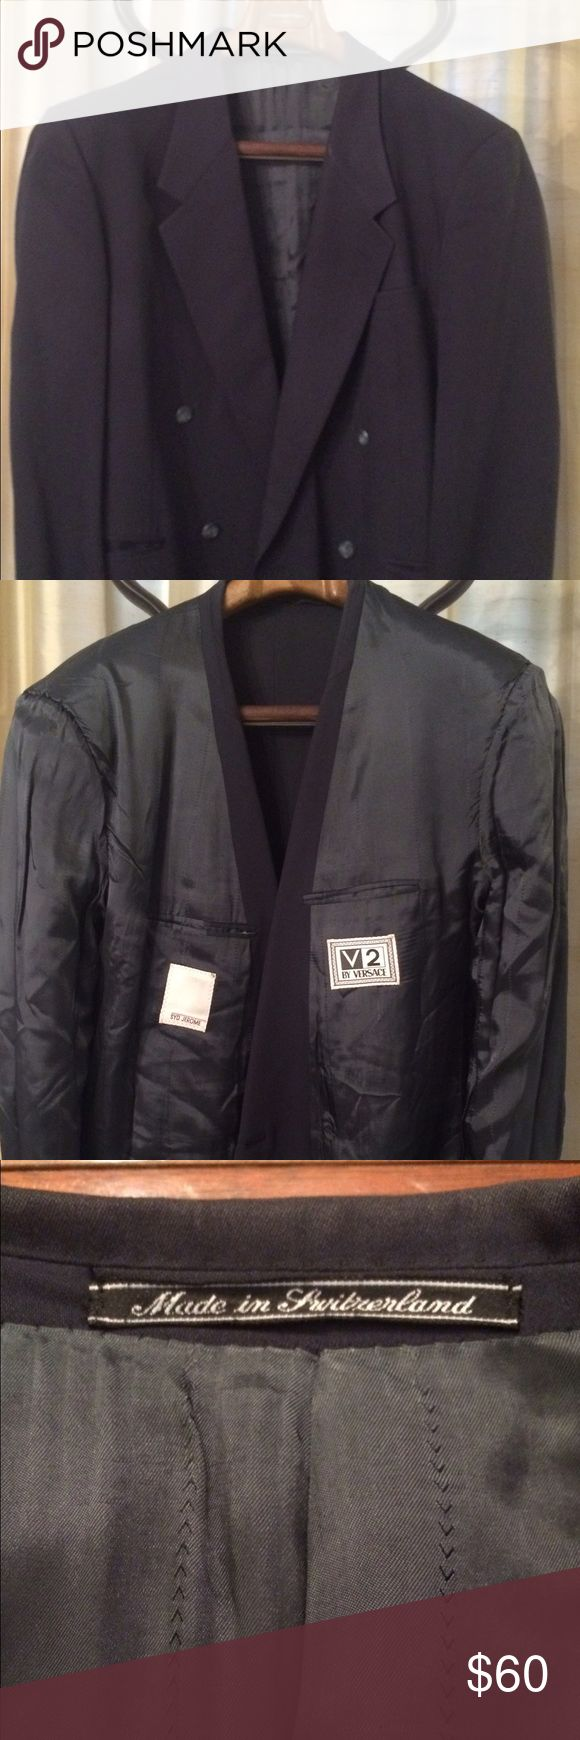 Versace Double Breasted Jacket Versace V2 made in Switzerland by Zegna. Double breasted jacket looks like to be a 44R. Jetted pockets,. Lining in good shape. No rips stains tears or any of that. More into available thanks for looking. Versace Suits & Blazers Sport Coats & Blazers